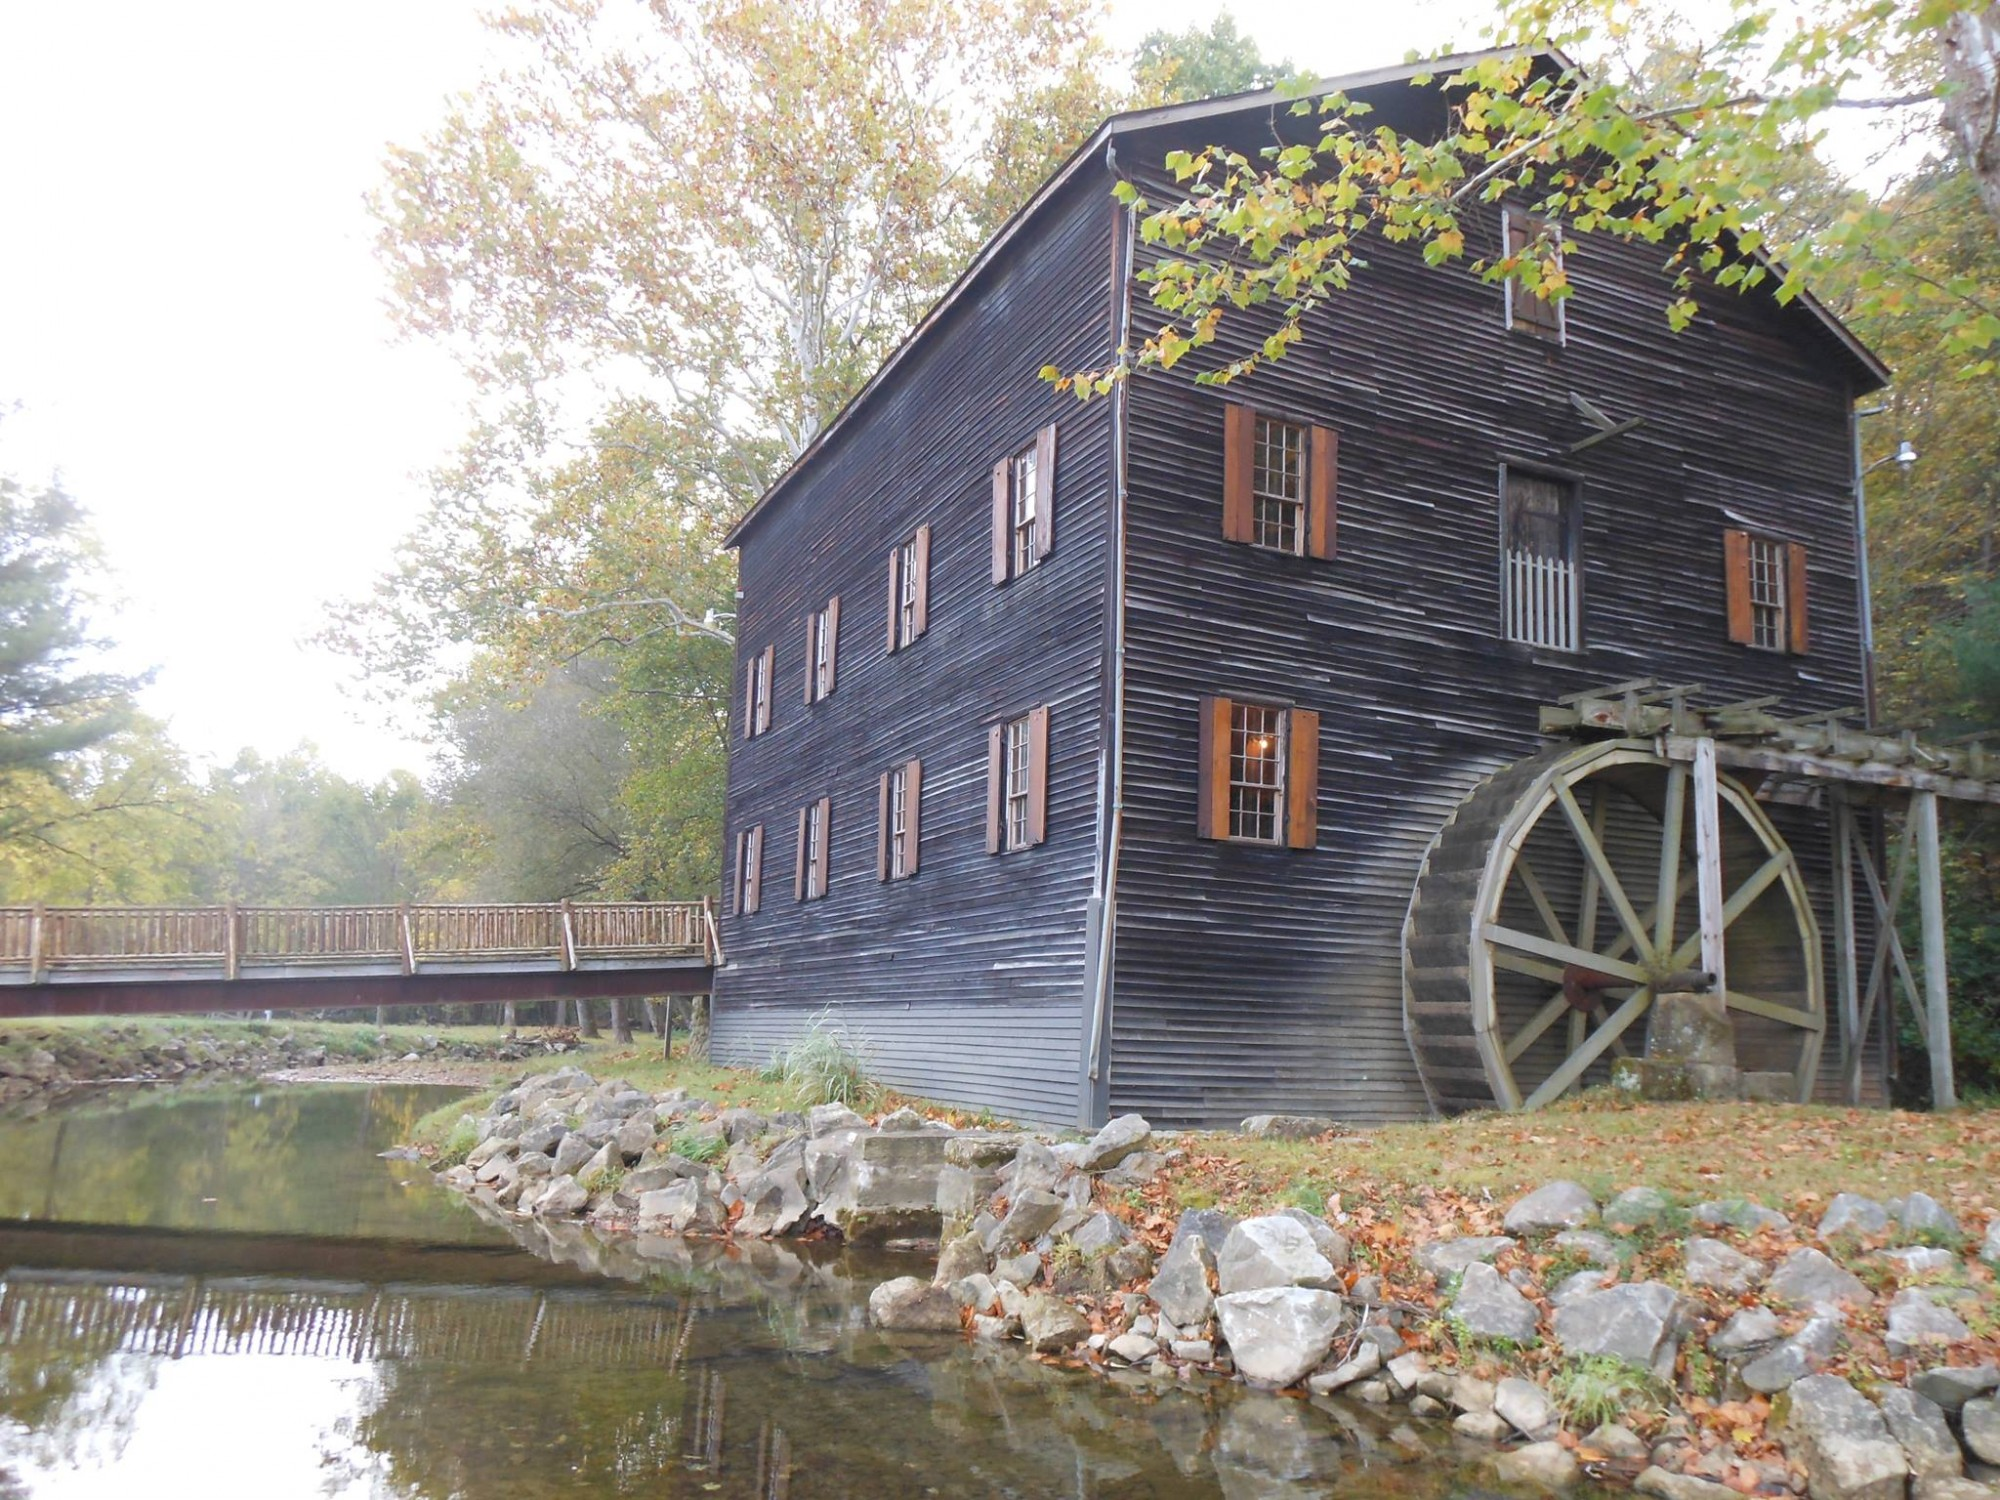 Wolf Creek Grist Mill